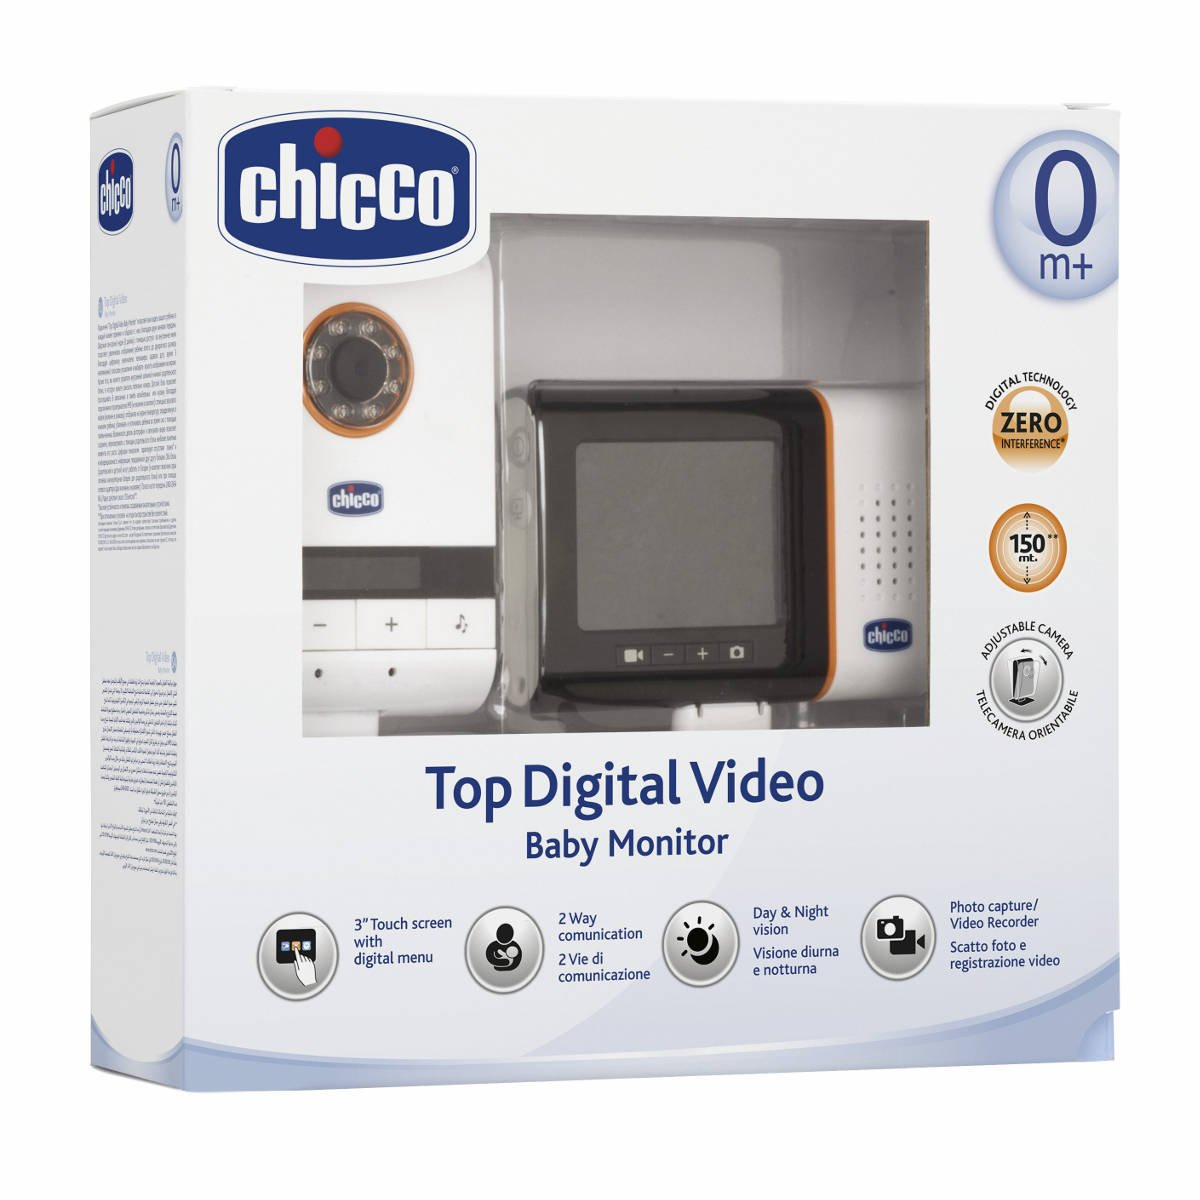 Chicco 025670 - Baby Controllo Top Digital Video product image